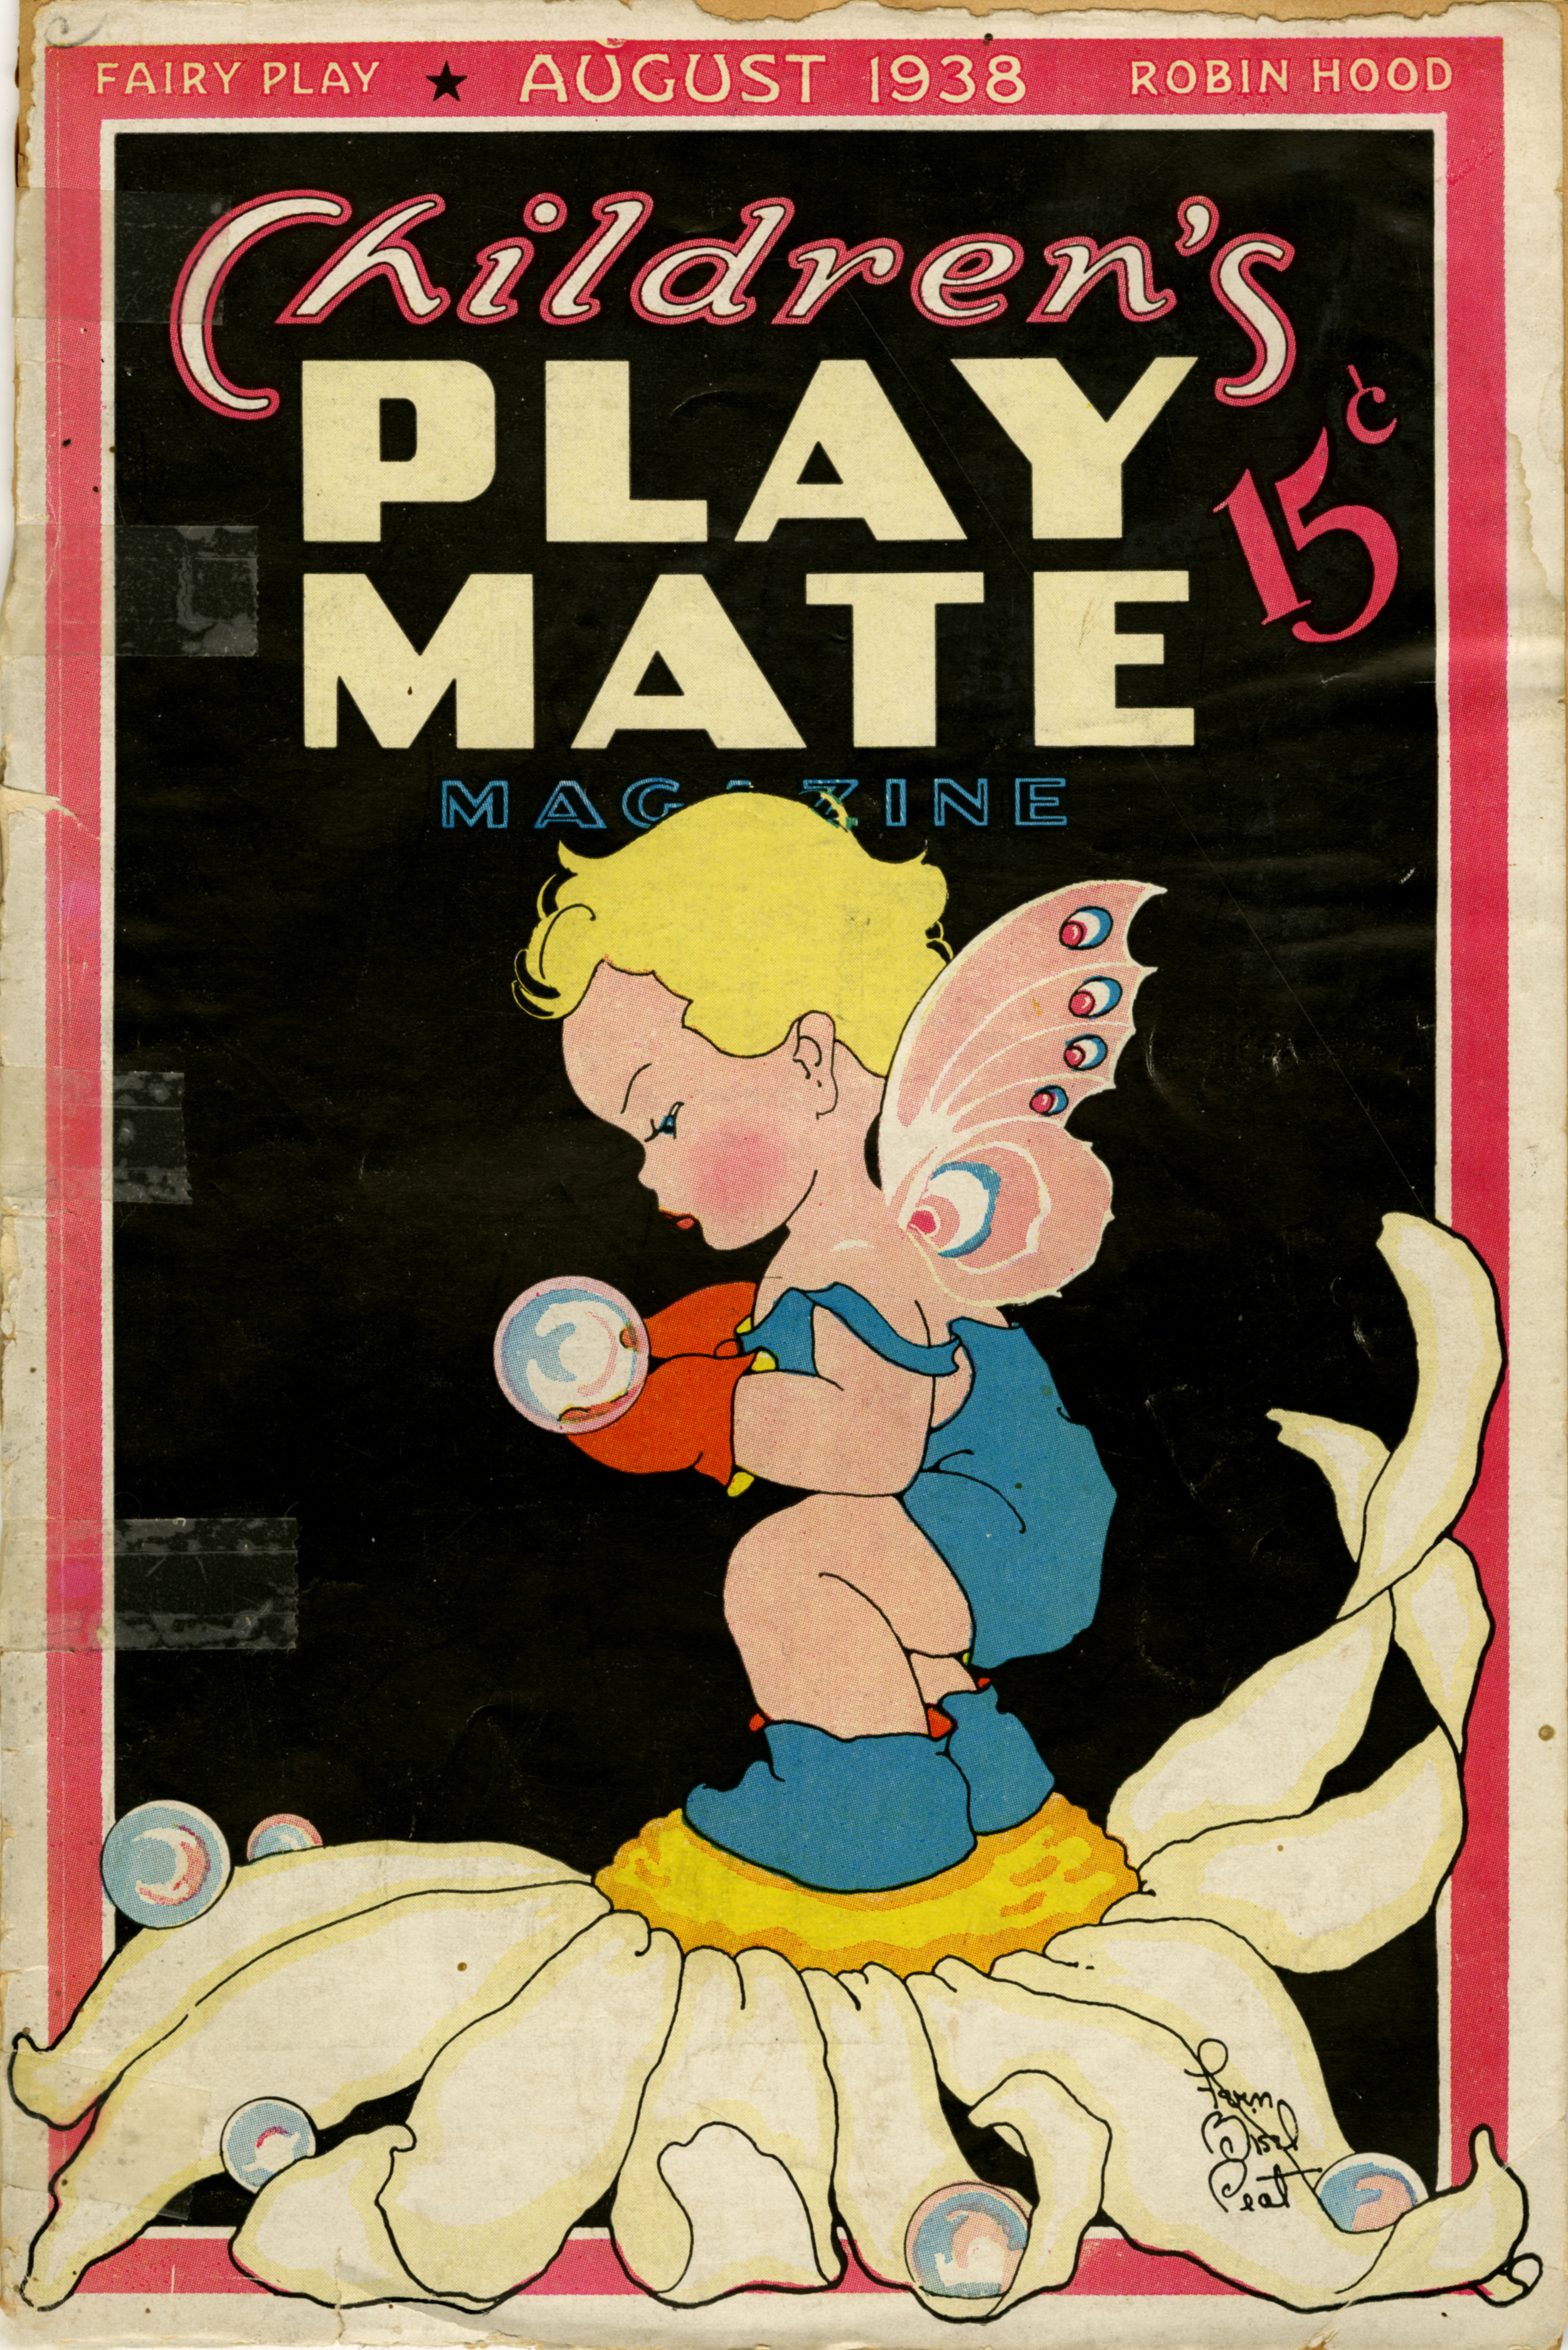 Fern Bisel Peat,  Children's   Playmate  cover illustration  .   August 1938.  Published by A.R. Mueller Printing Co, Cleveland, Ohio.  More Children's Playmate covers and interior spreads appear below. The magazine was the most durable engagement of Peat's long career.